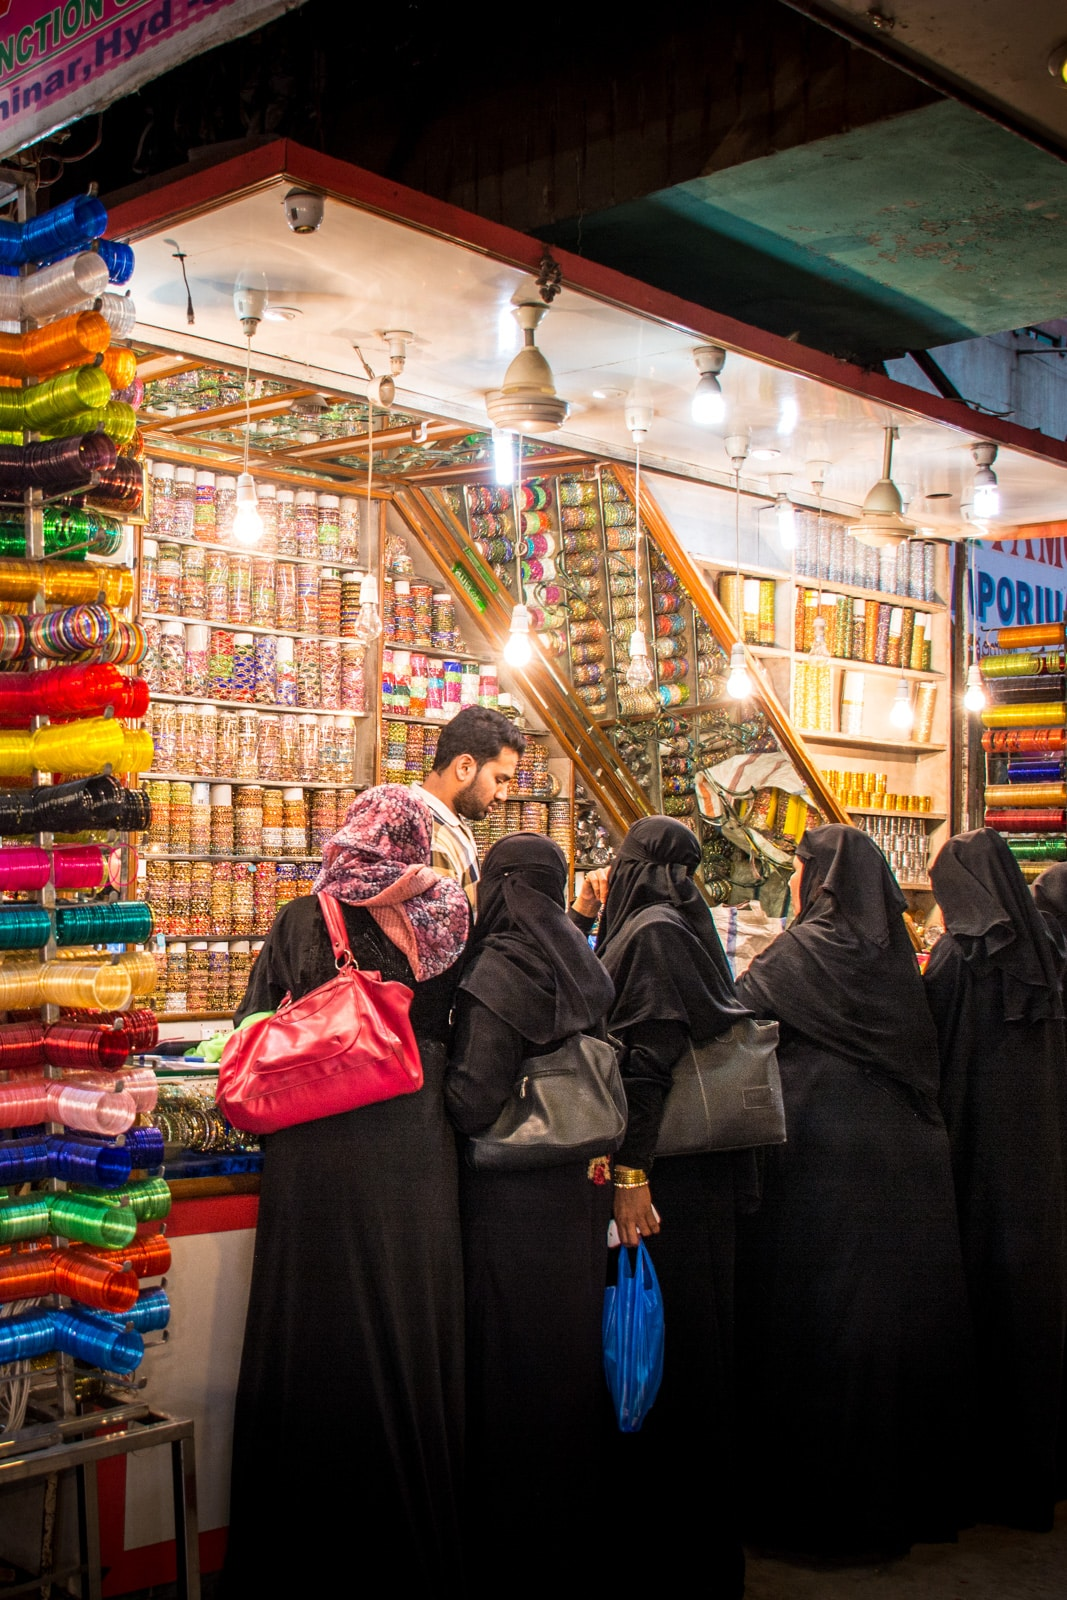 Women in black burqa buying bangles in one of many bazaars in the old city of Hyderabad, India, a great off the beaten track destination for adventurous and foodie travelers.